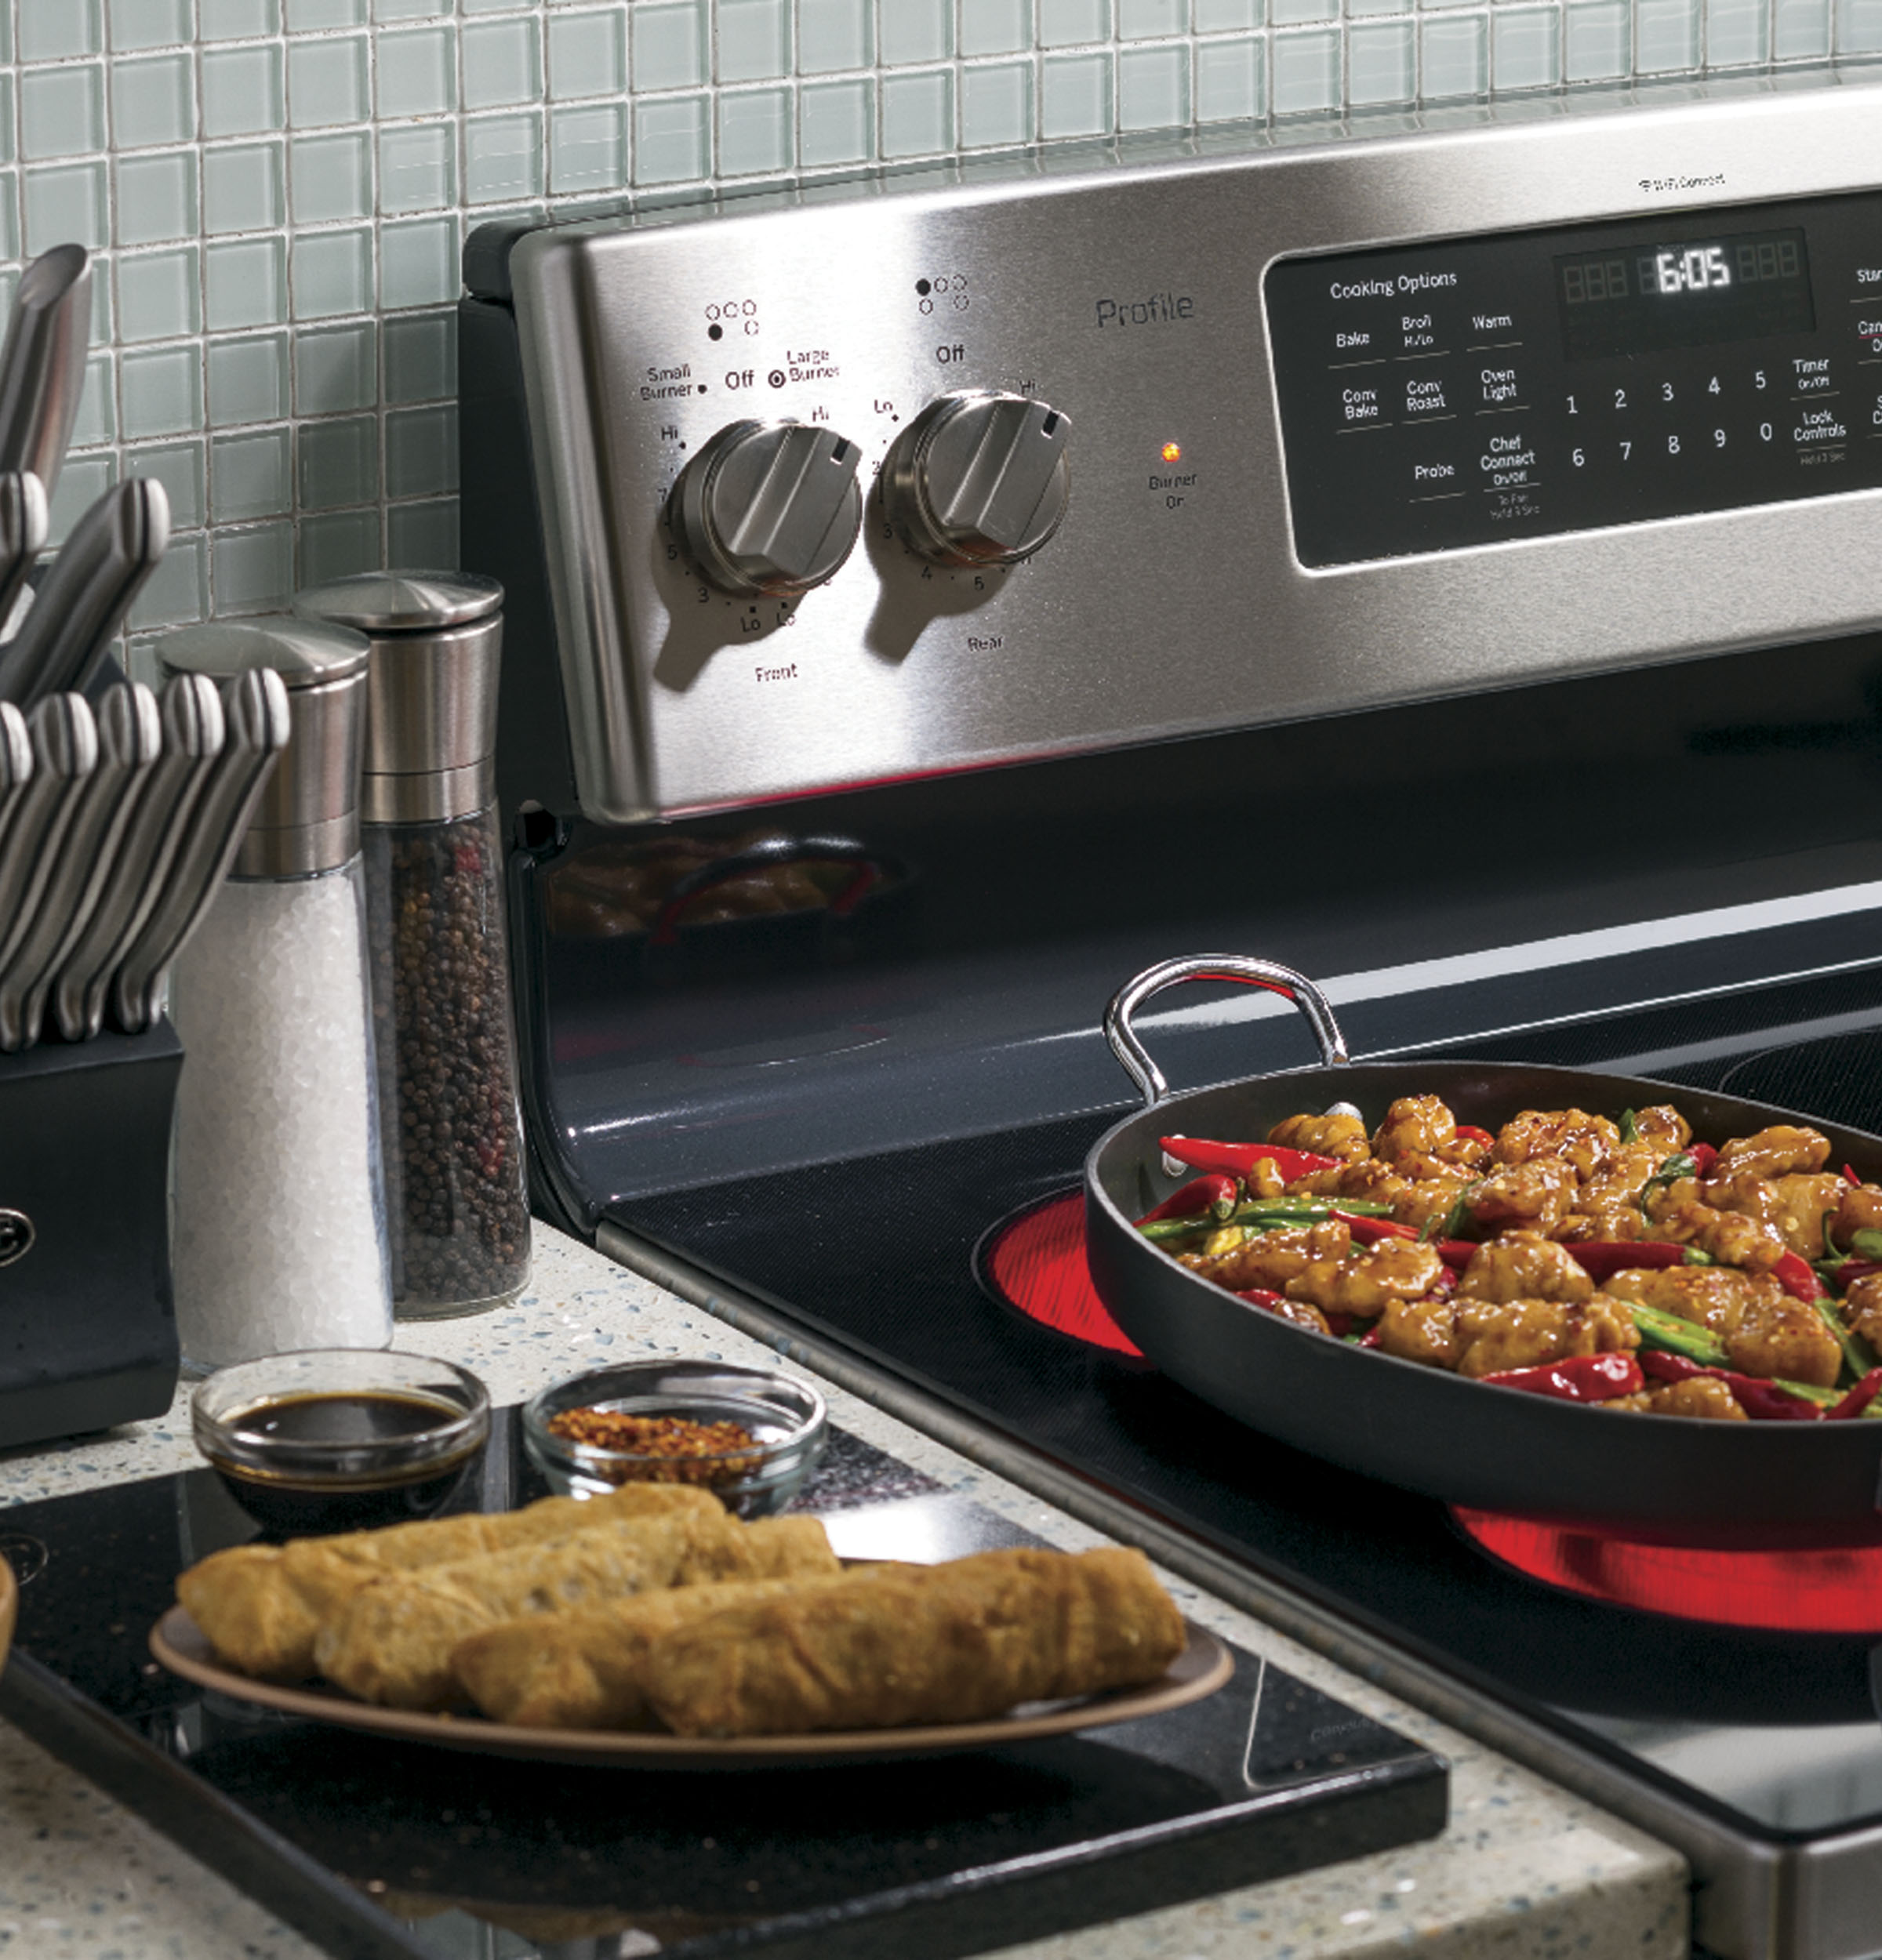 "Model: PB930SLSS | GE Profile GE Profile™ Series 30"" Free-Standing Electric Convection Range"